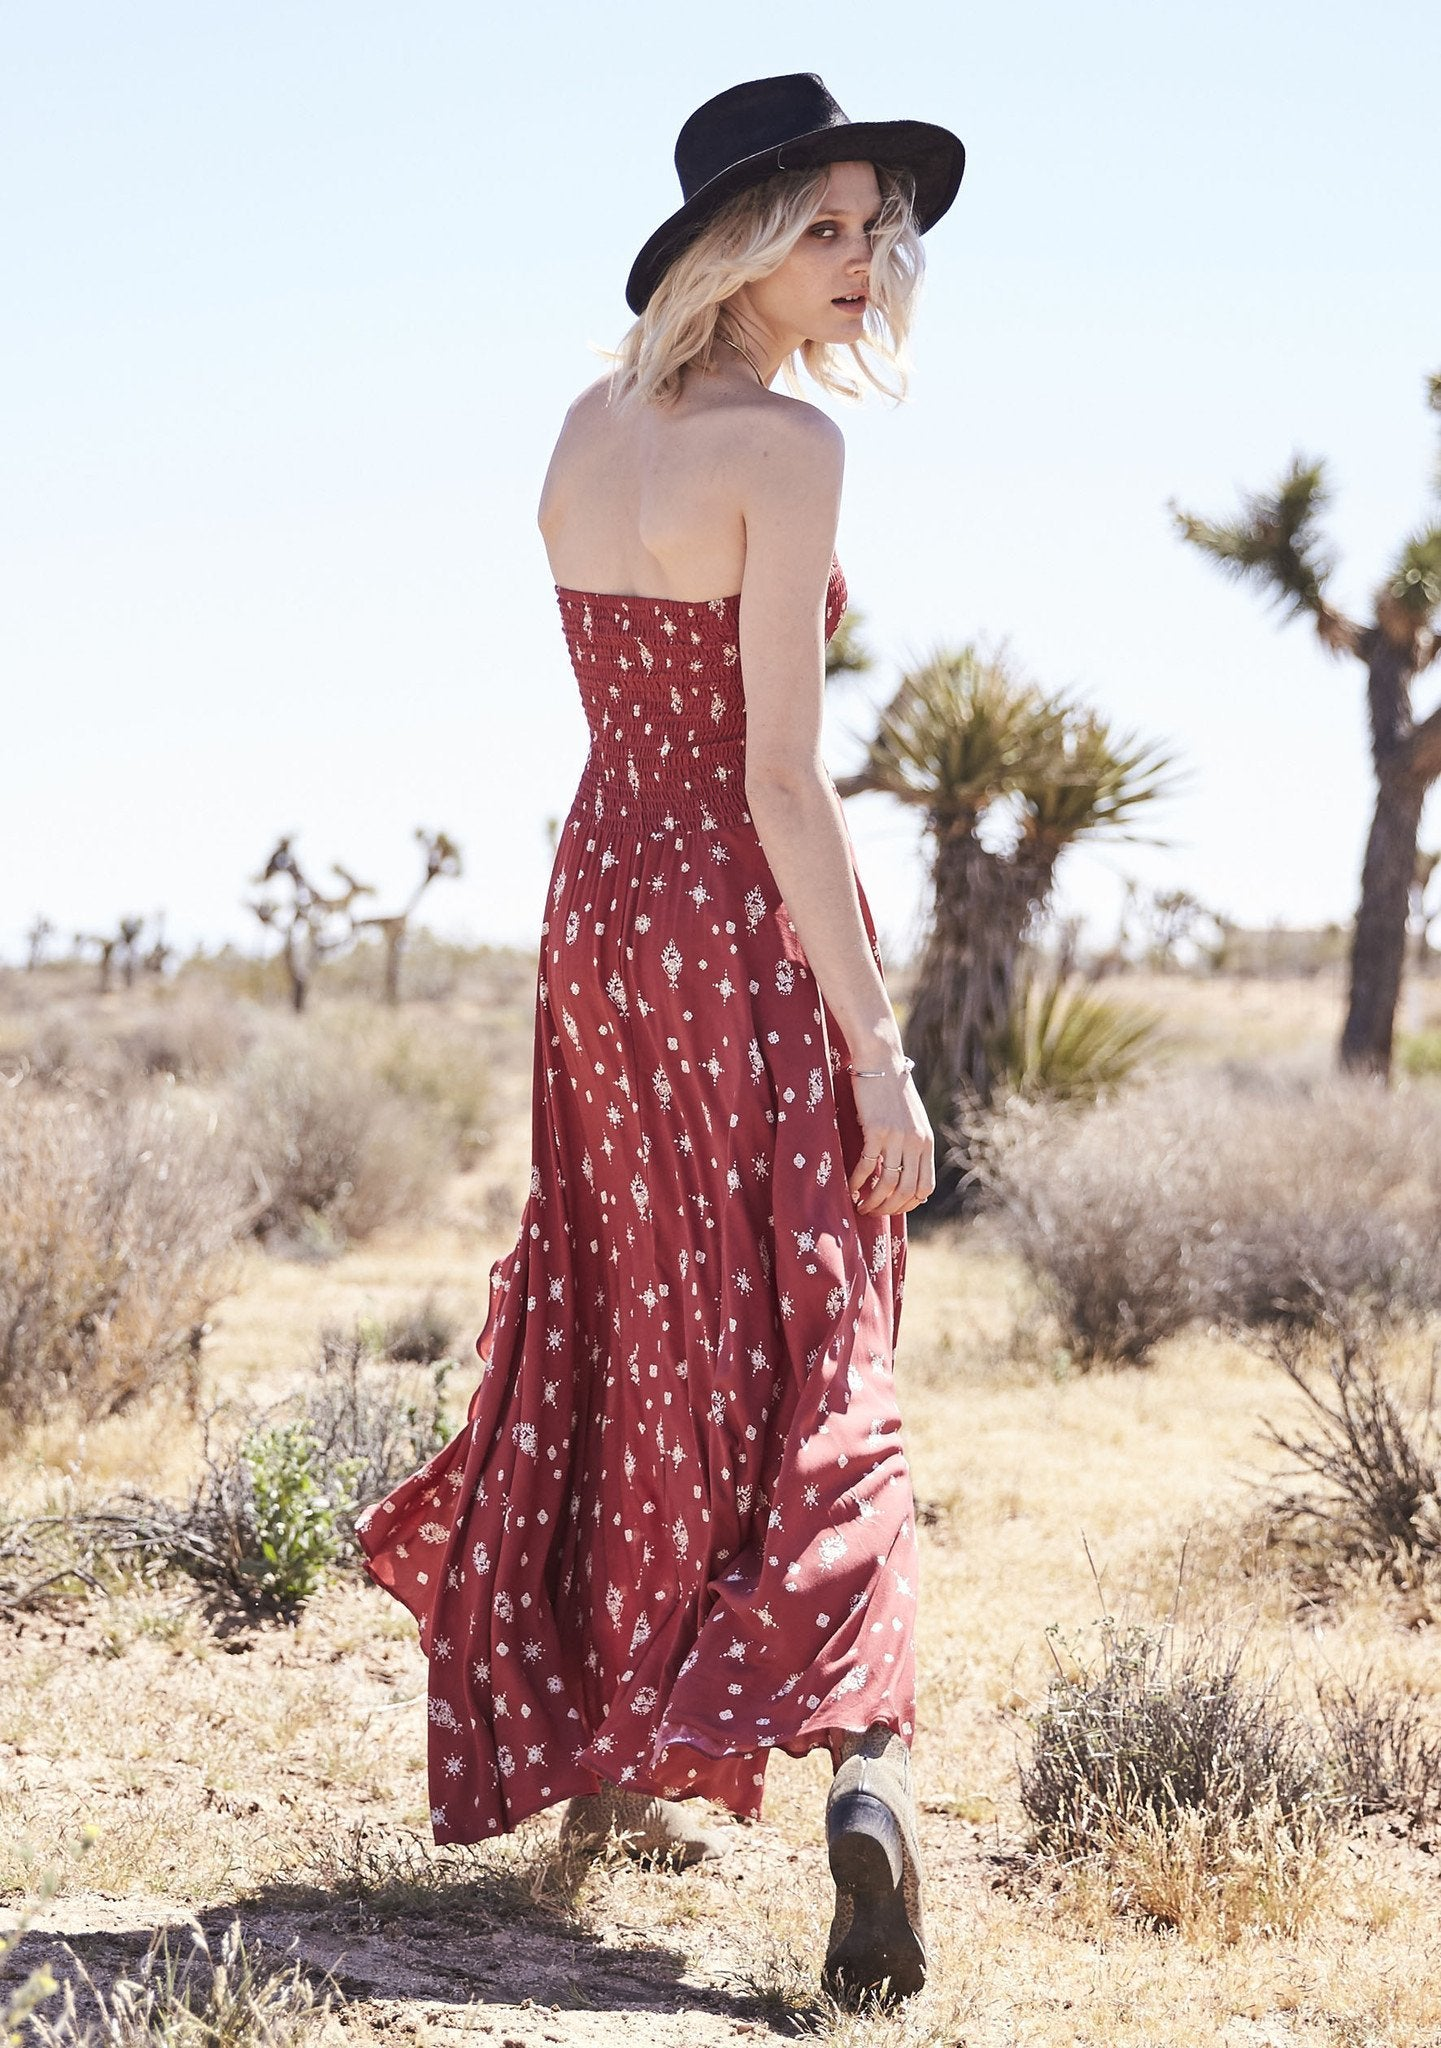 Gypsy Girl Shirred Tube Dress Desert Sky Red Musk